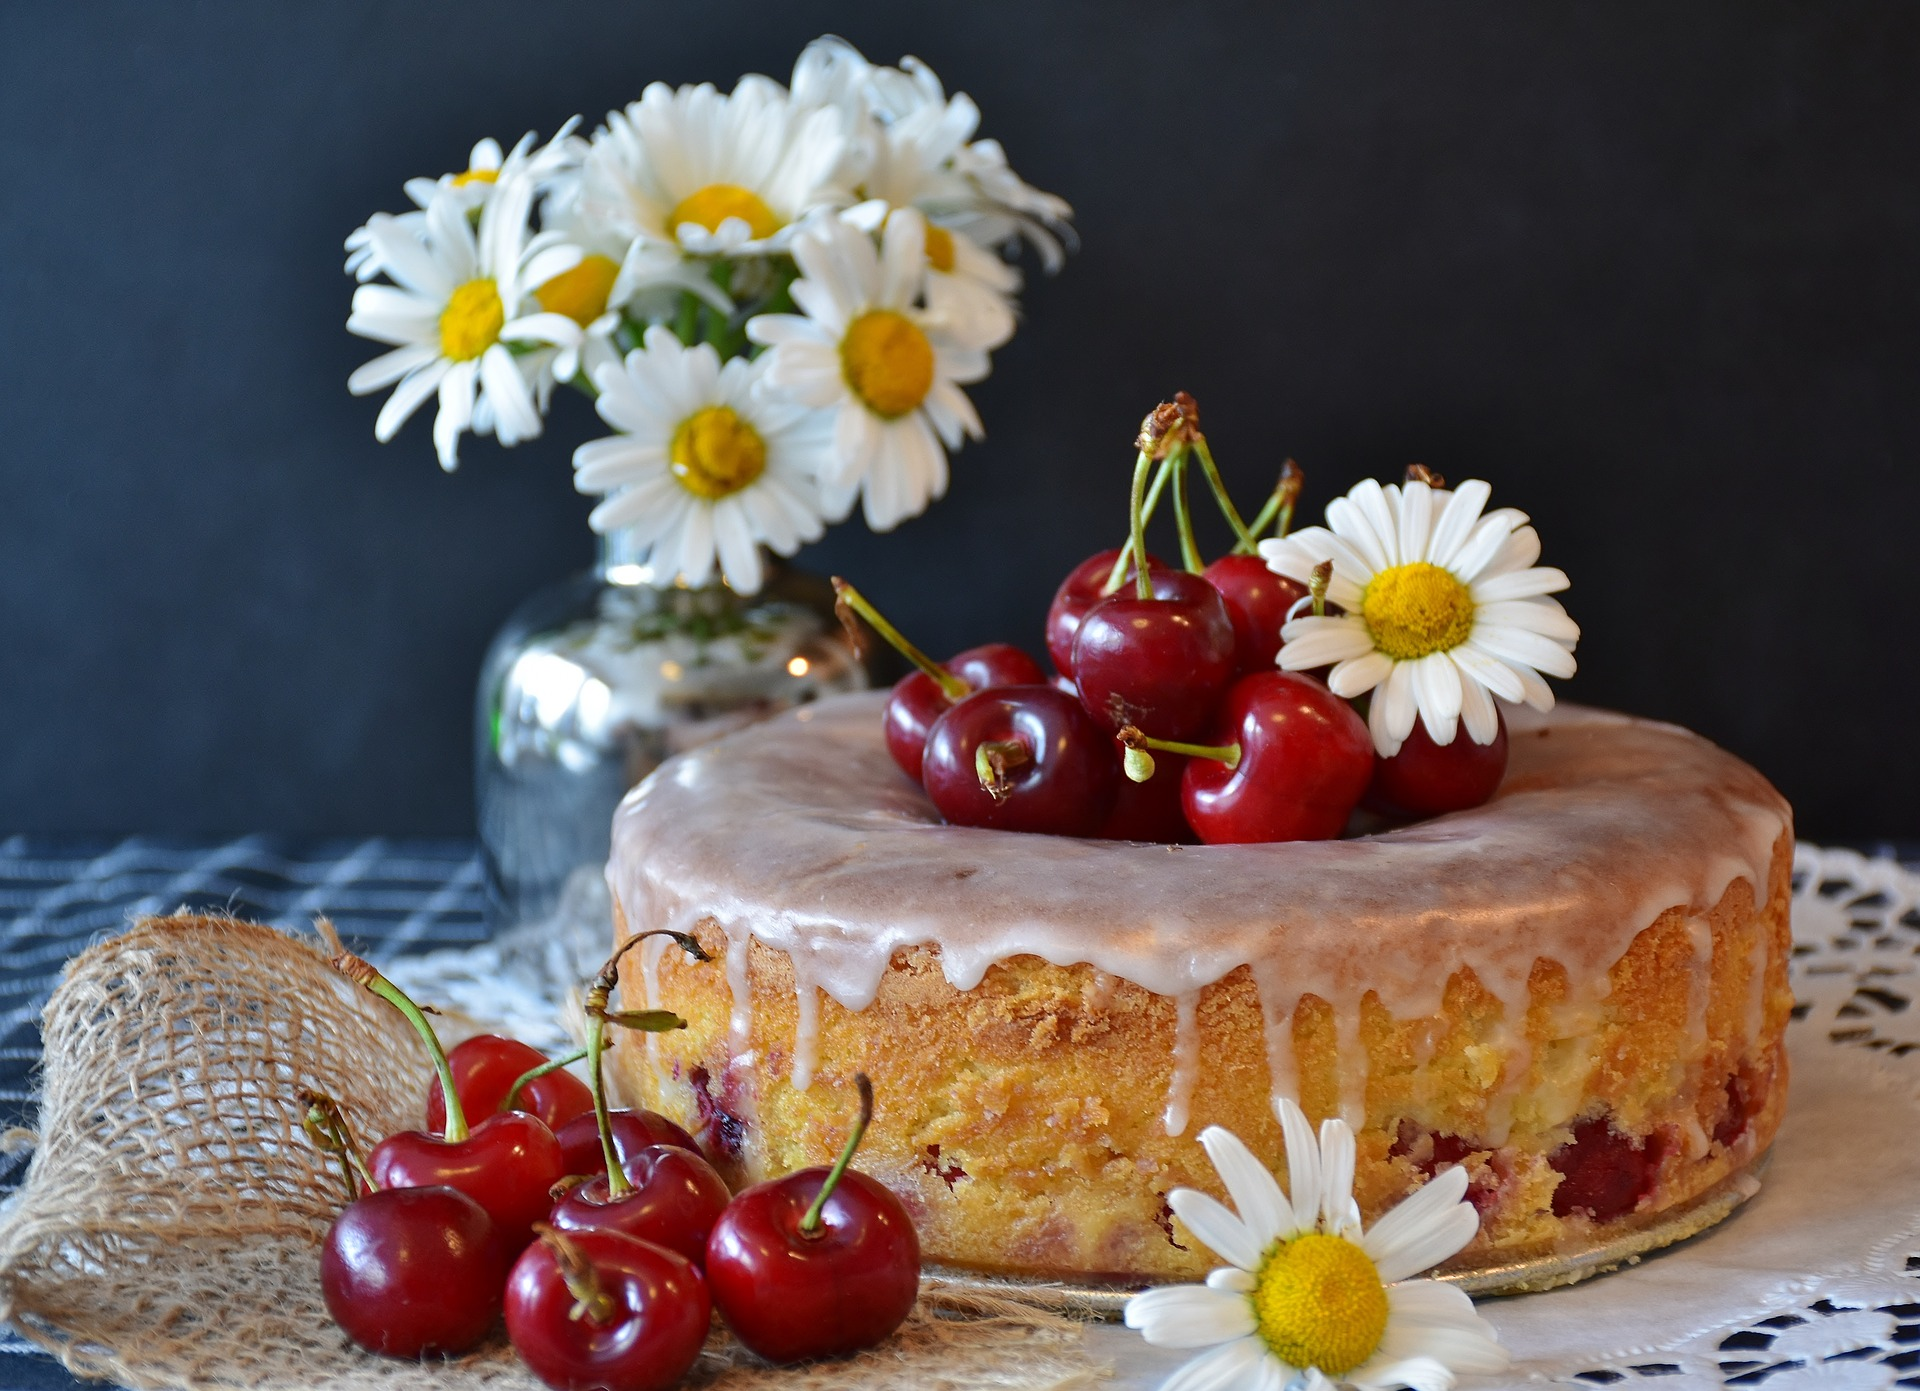 Cherries are a versatile fruit and, in addition to helping jet lag, can be used to make a variety of tasty treats including cherry cake.